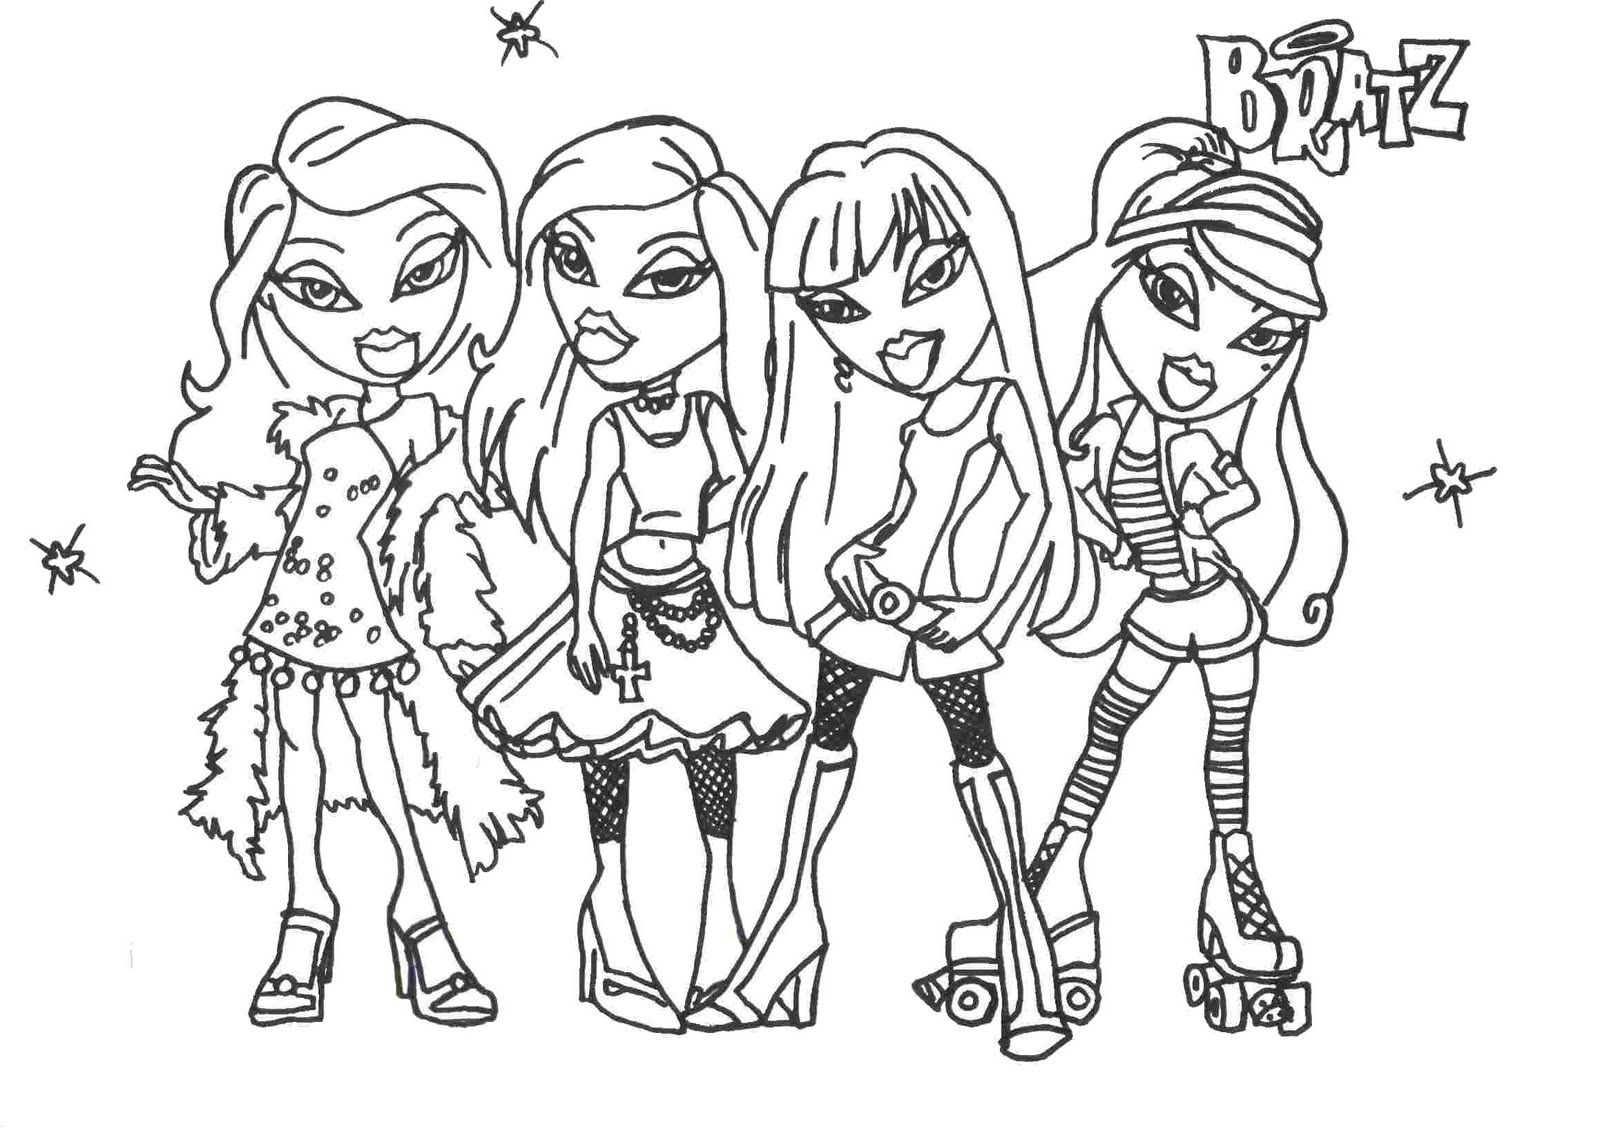 Coloring Pages For Girls 8 Coloring Kids Coloring Pages